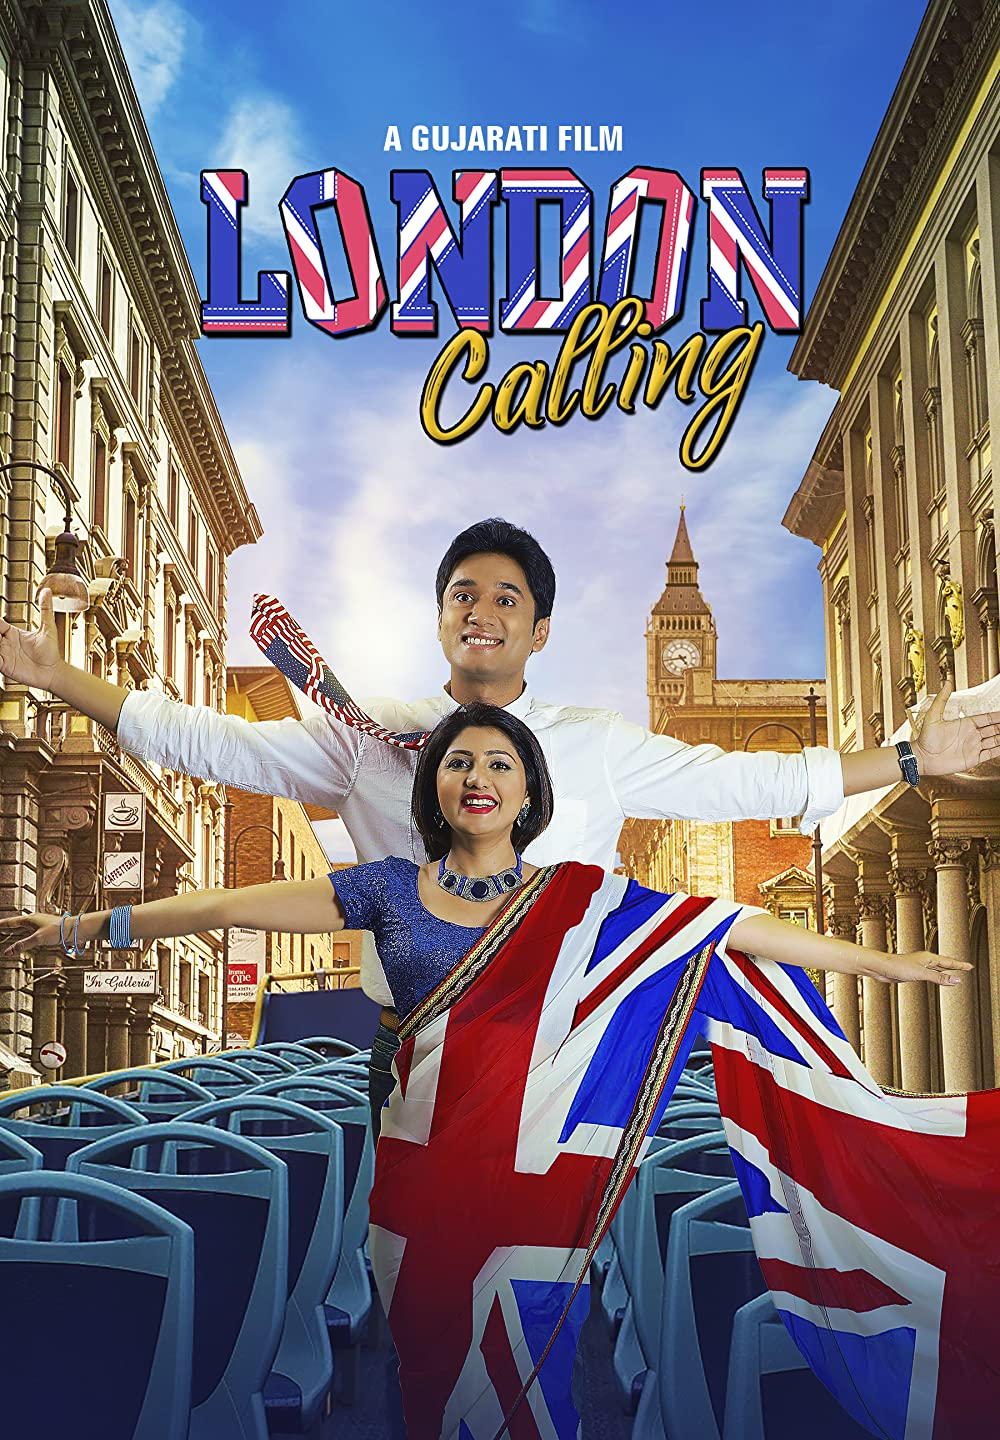 London Calling 2020 Gujrati Full Movie 720p HDRip ESubs 840MB Download